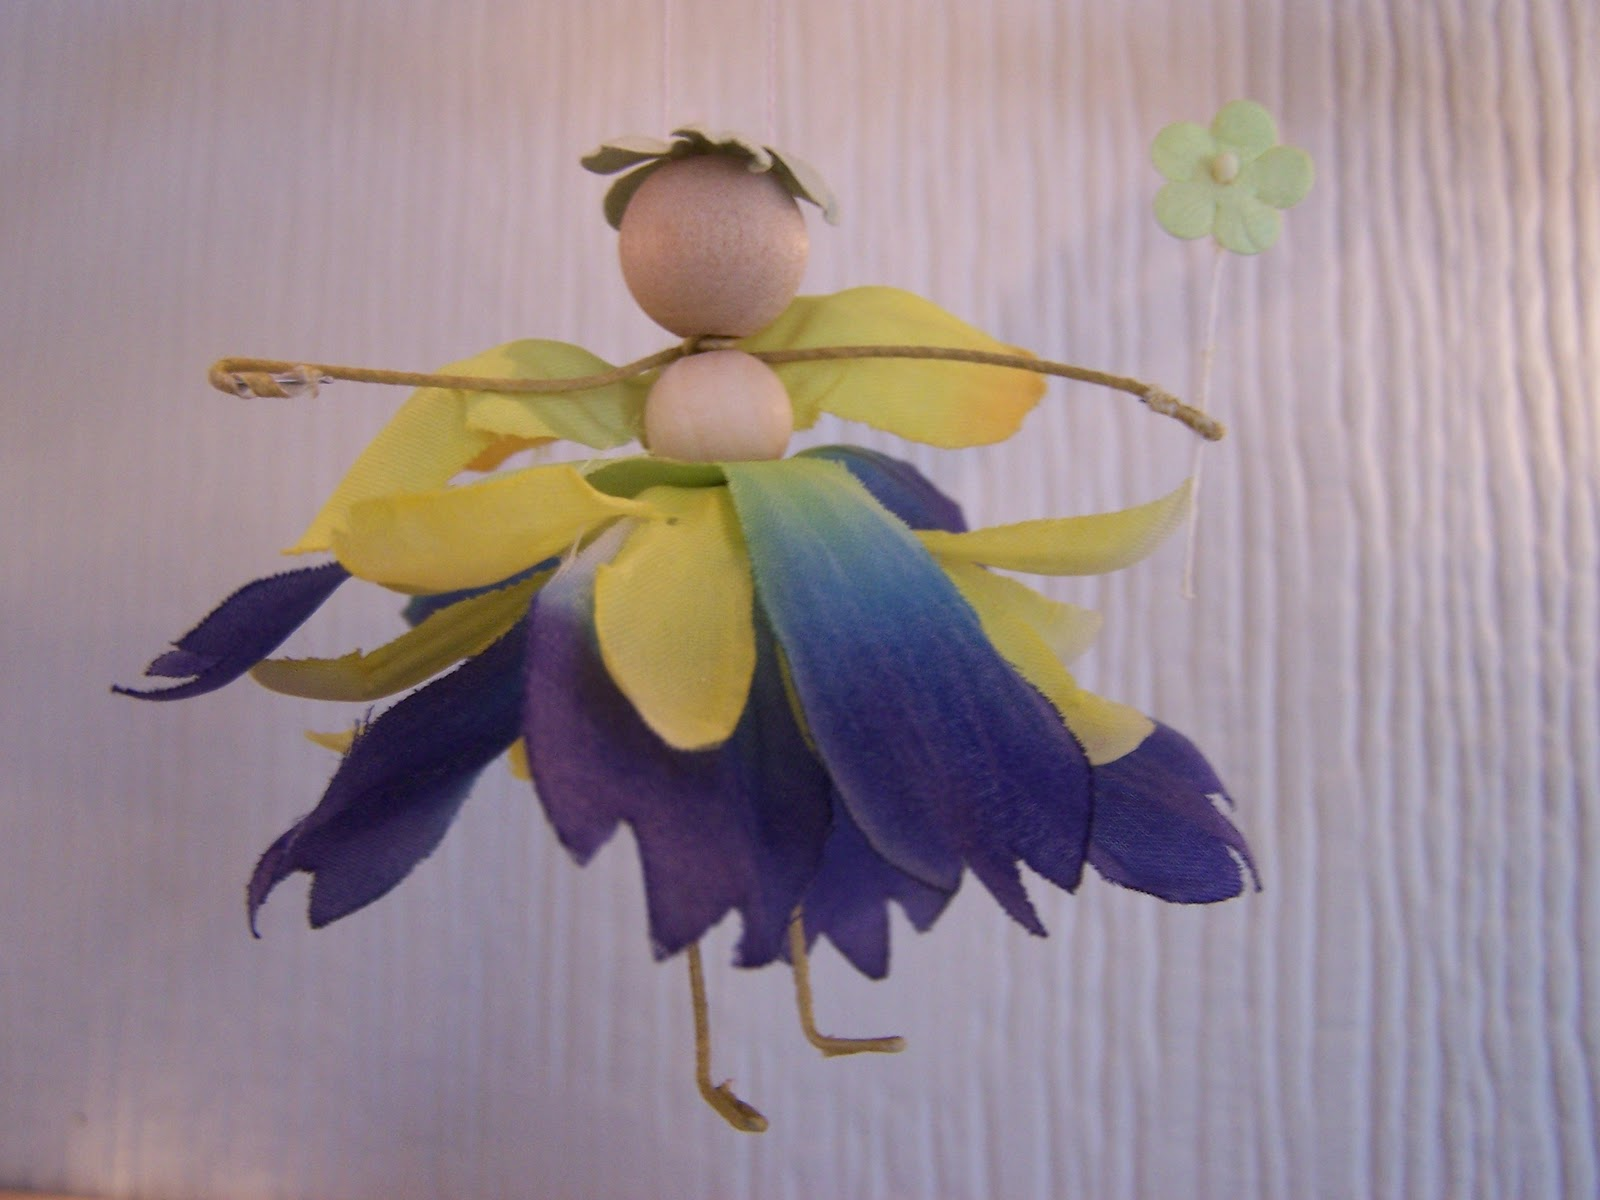 Fairy Crafts Silk Flowers http://madebyjoey.blogspot.com/2011/12/tutorial-flower-petal-fairies.html